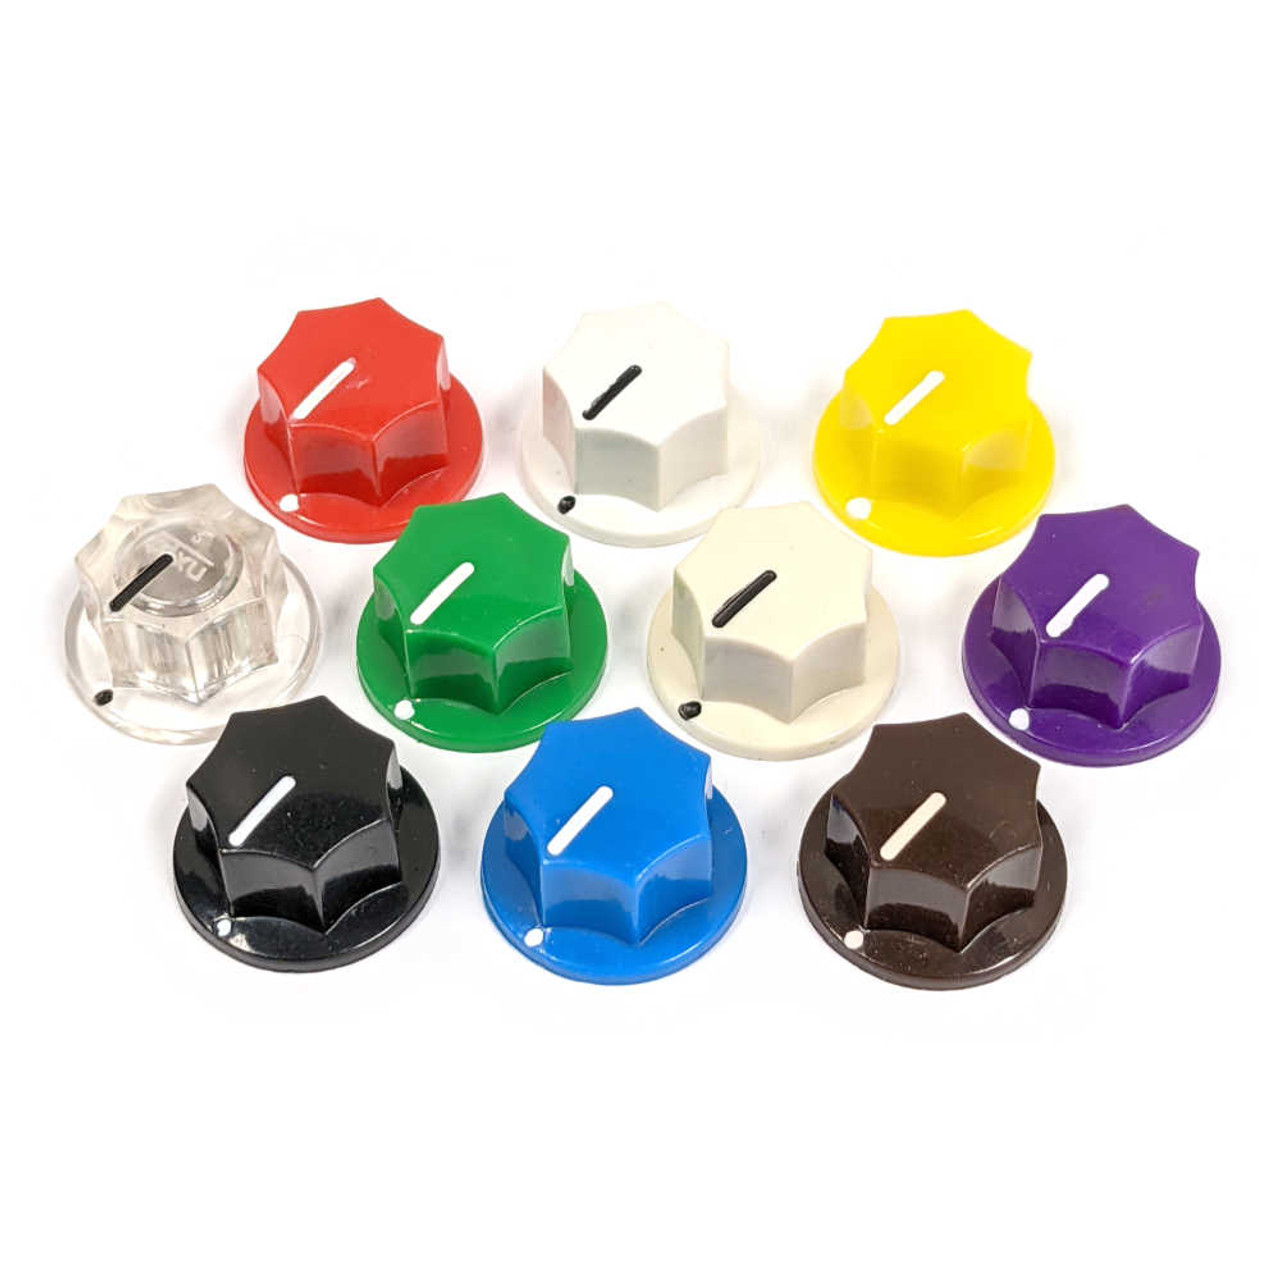 MXR Style Fluted Knob - Small (Choose Colour)